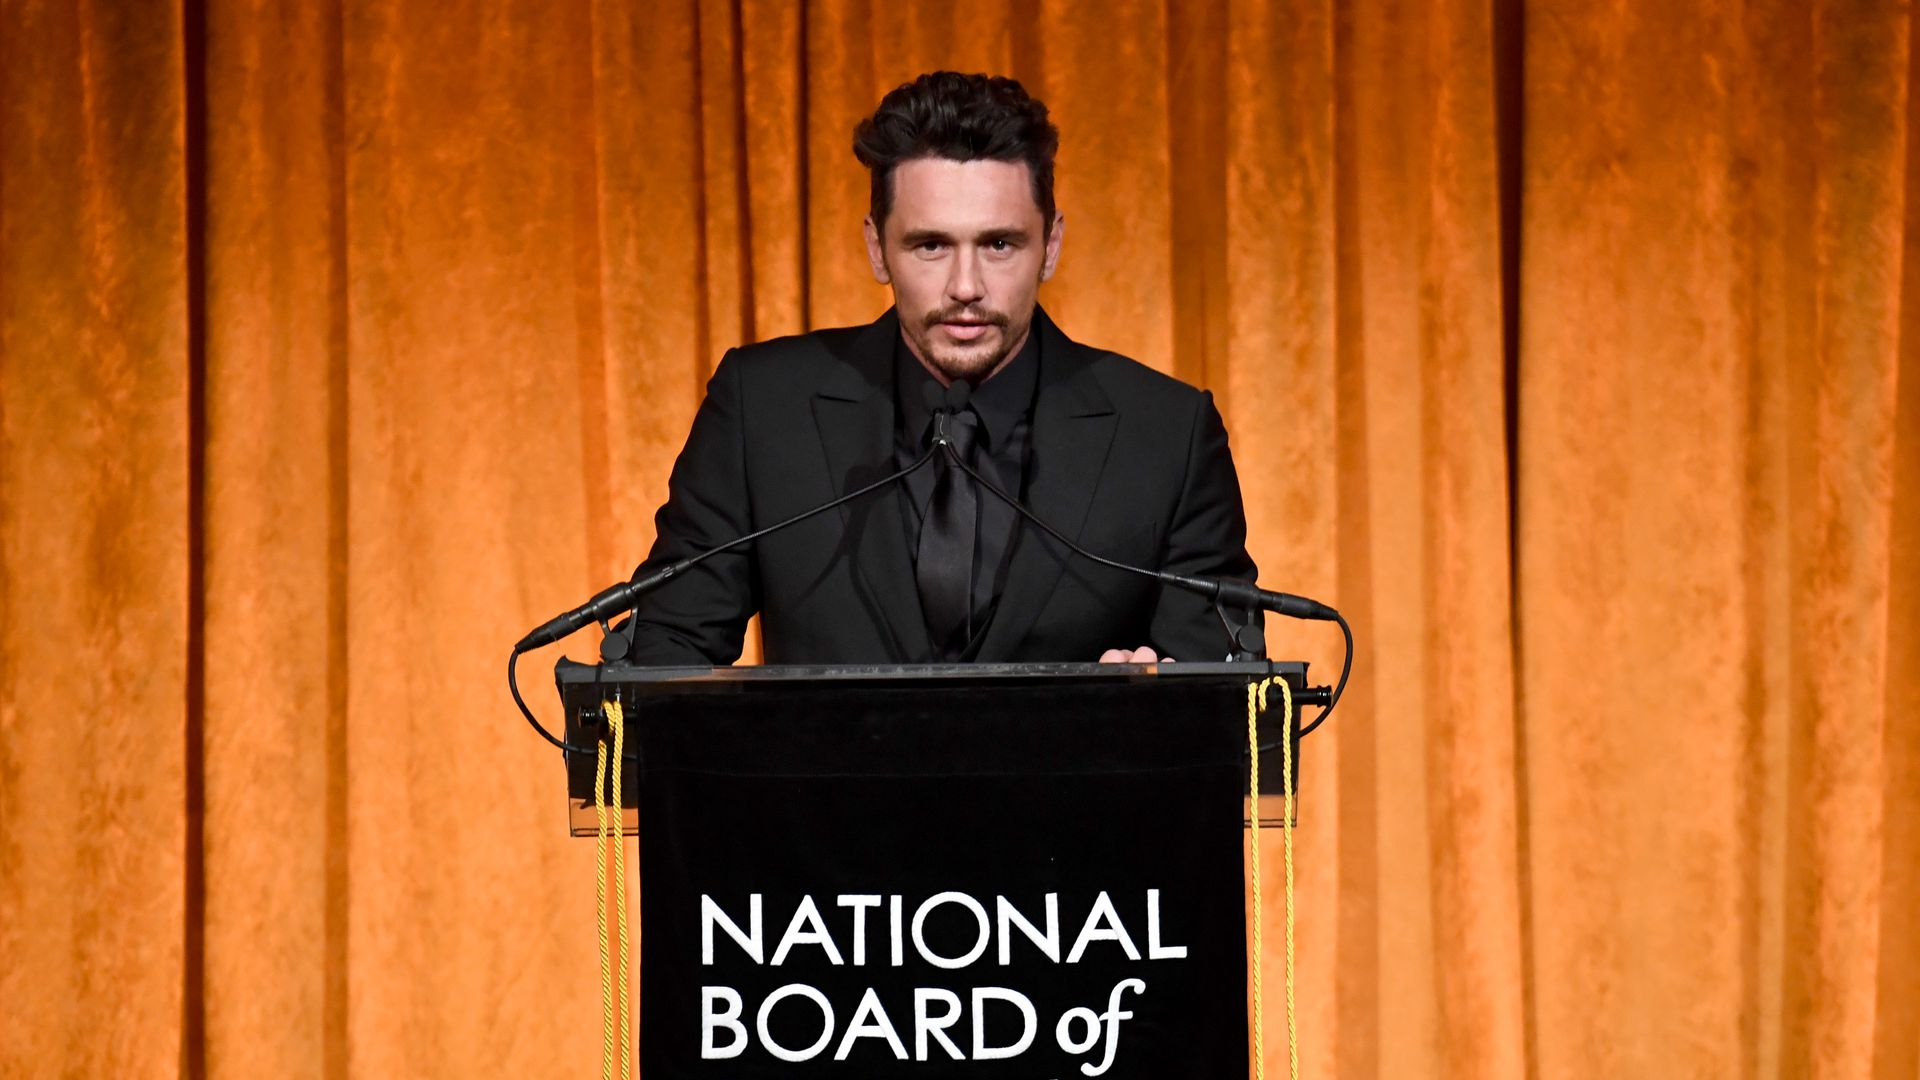 James Franco giving a speech